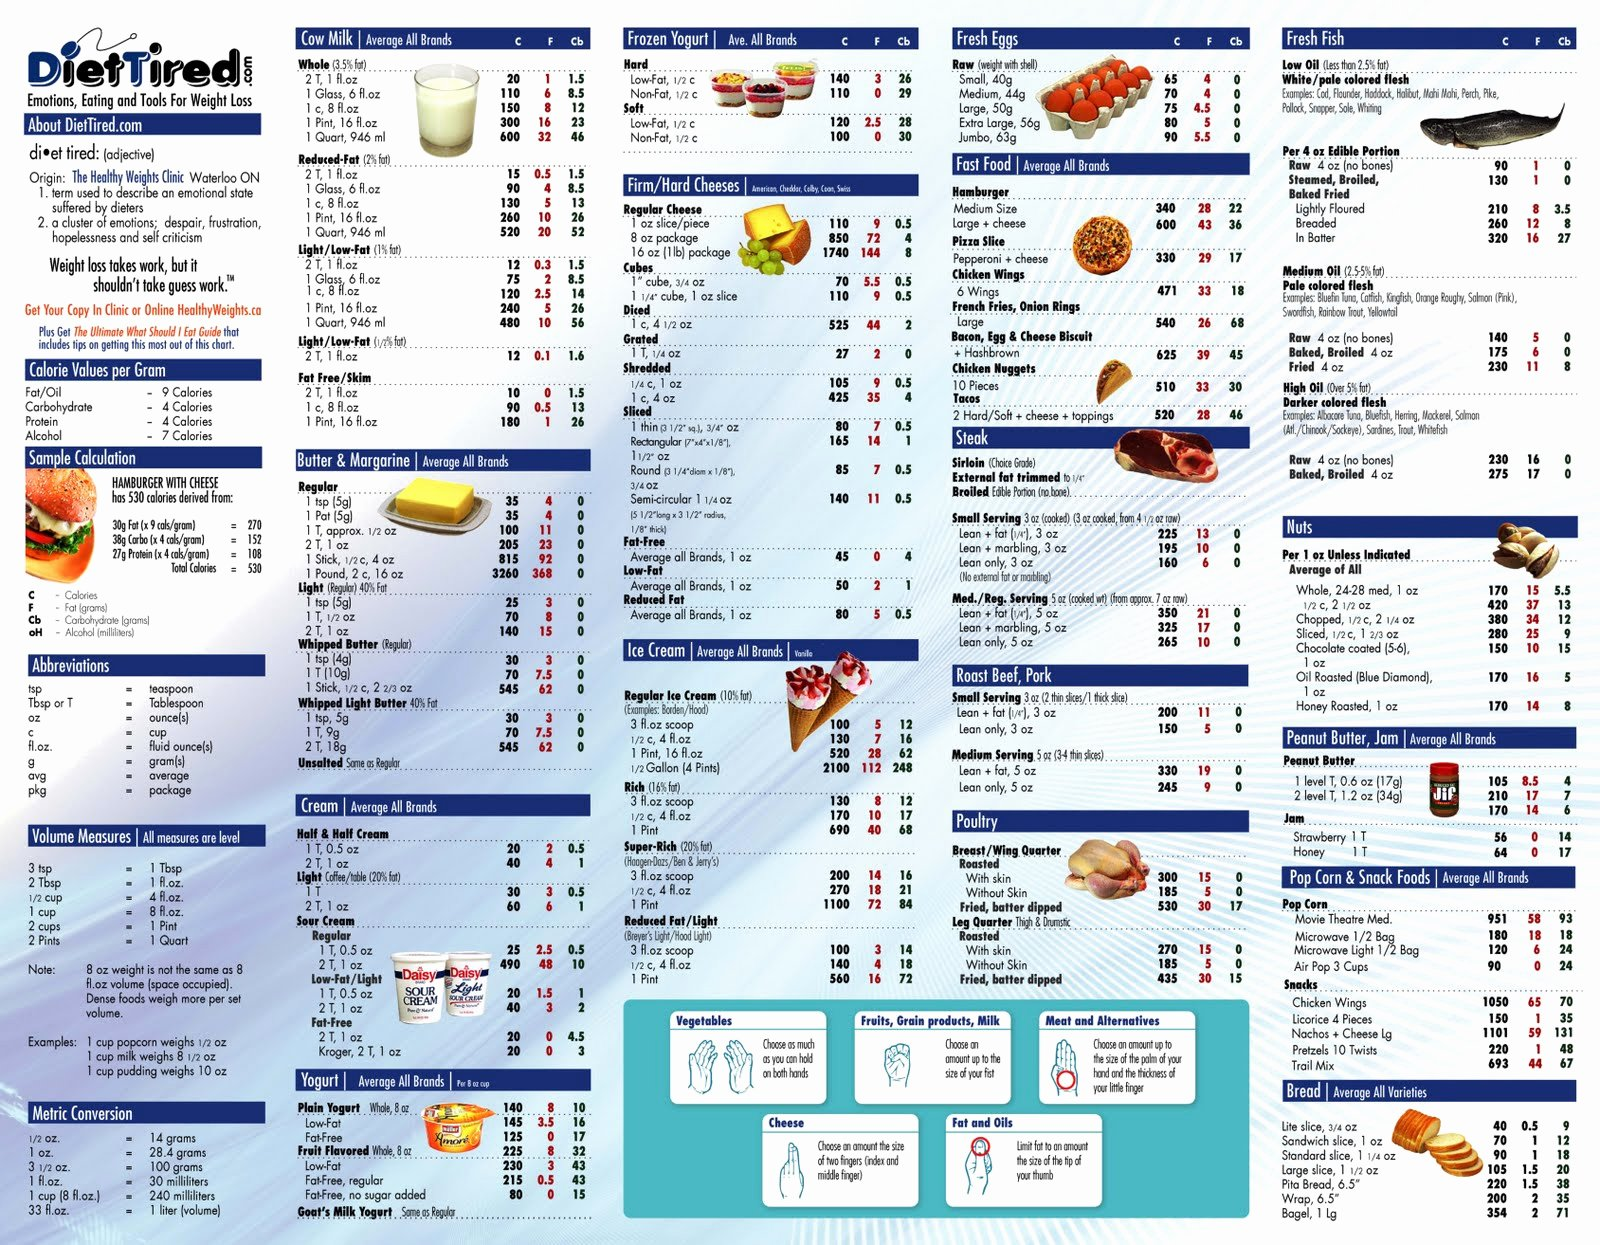 Calorie Charts for Food Elegant Food Calorie Table Food Calorie Table